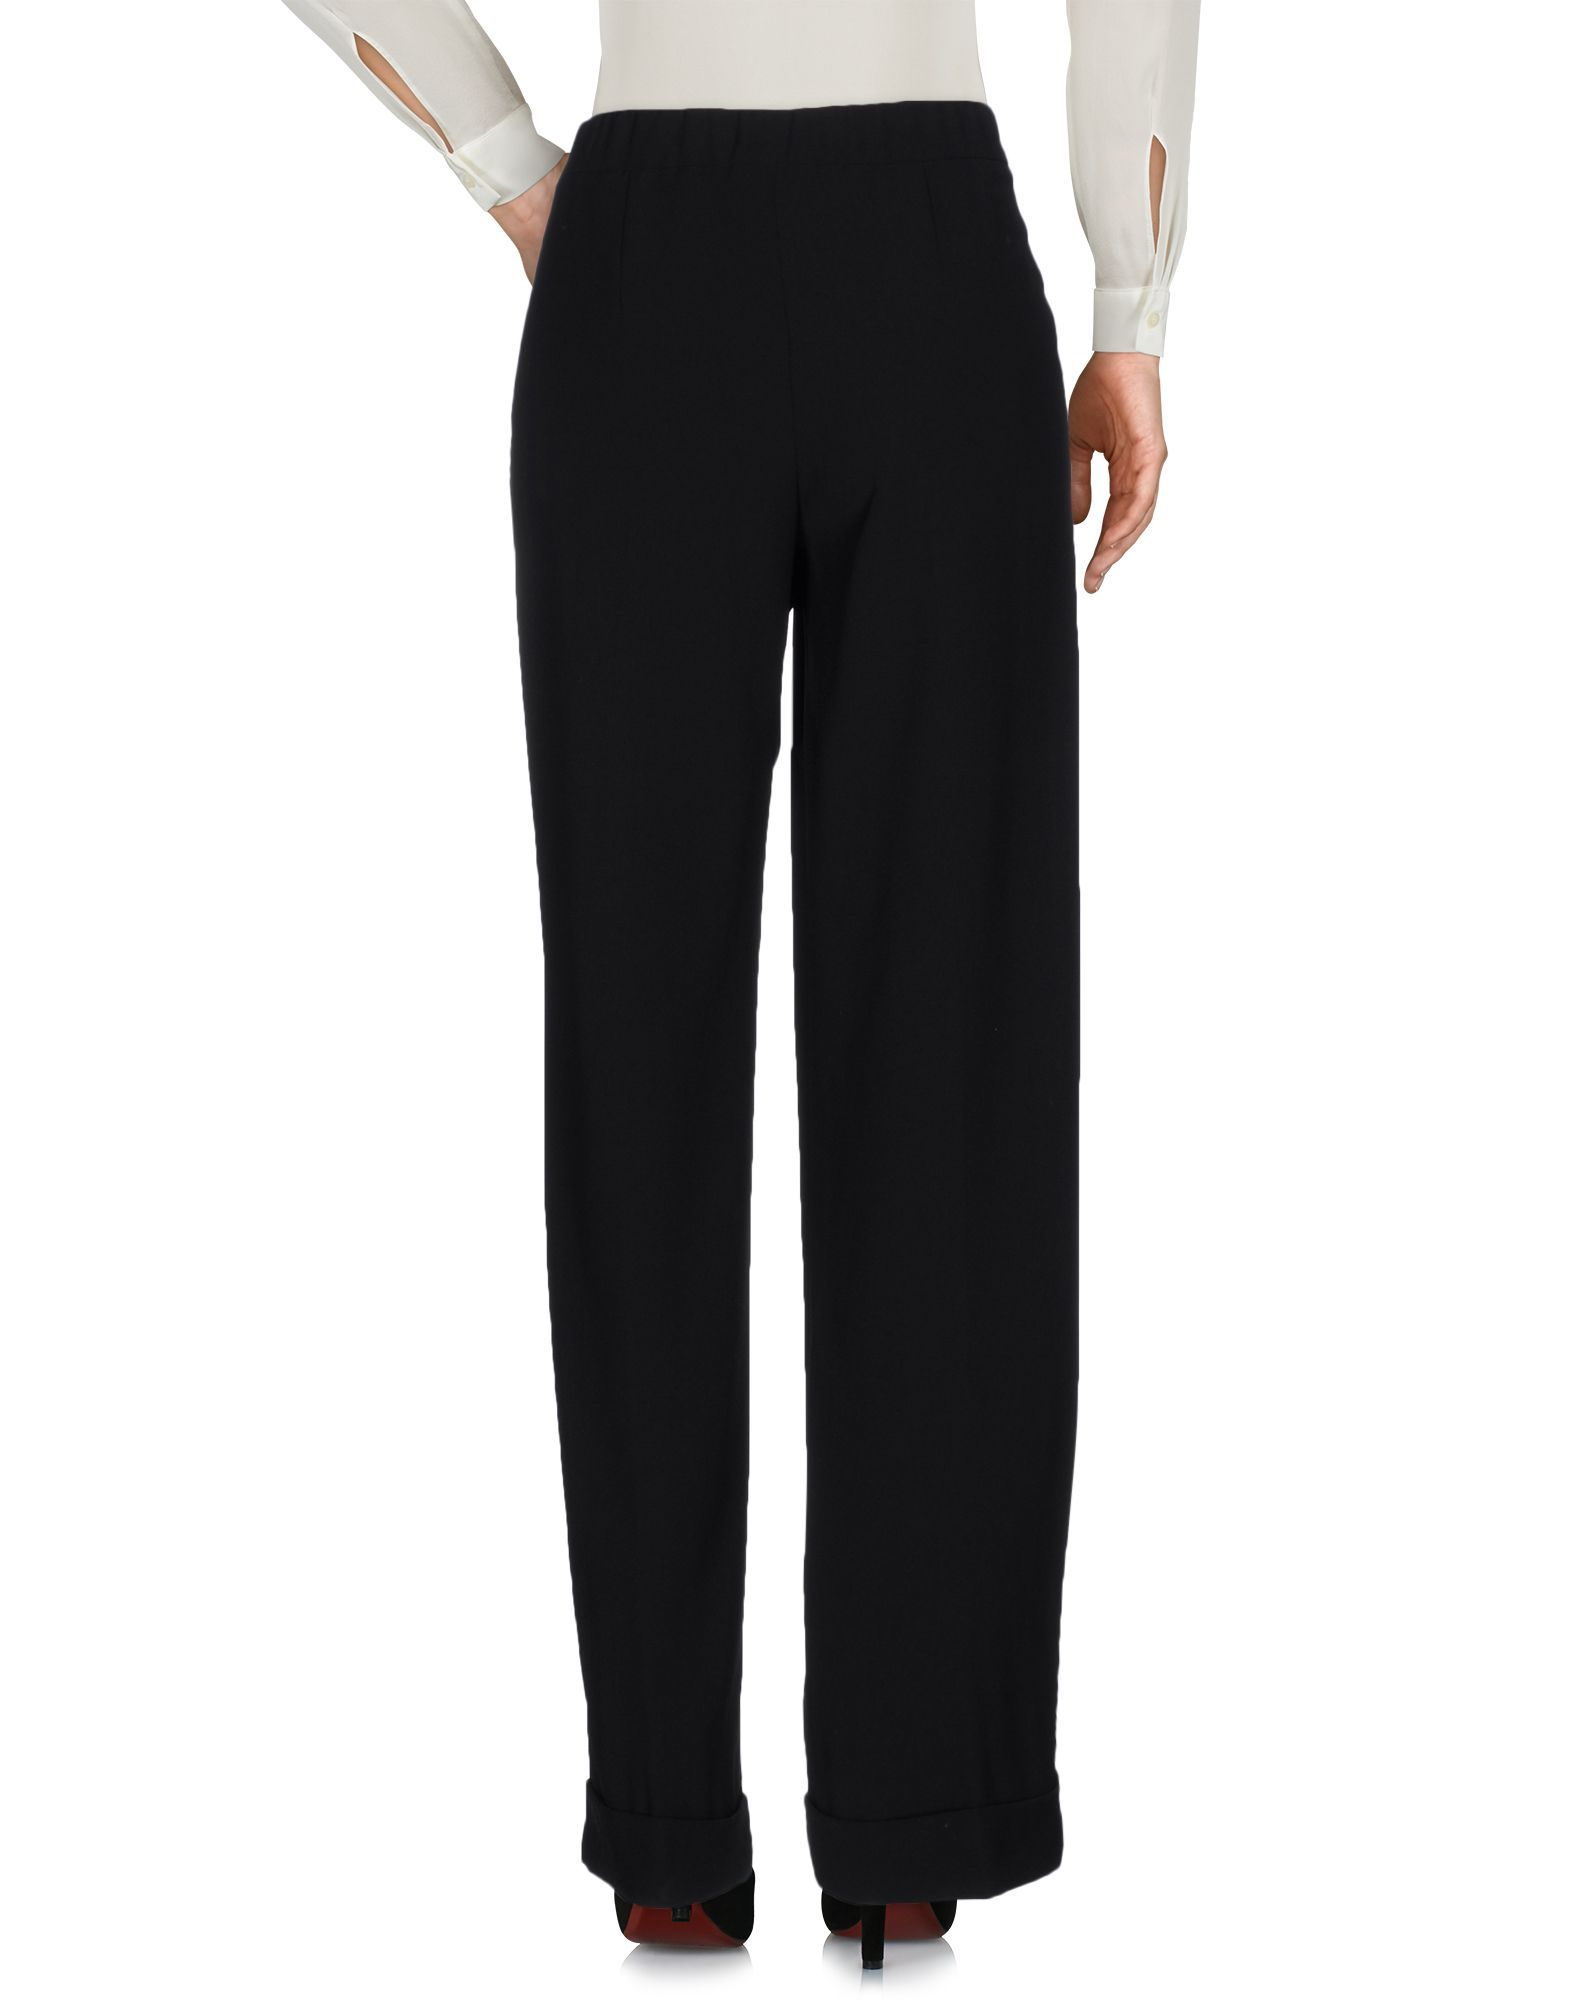 P.A.R.O.S.H. Black Tailored Trousers